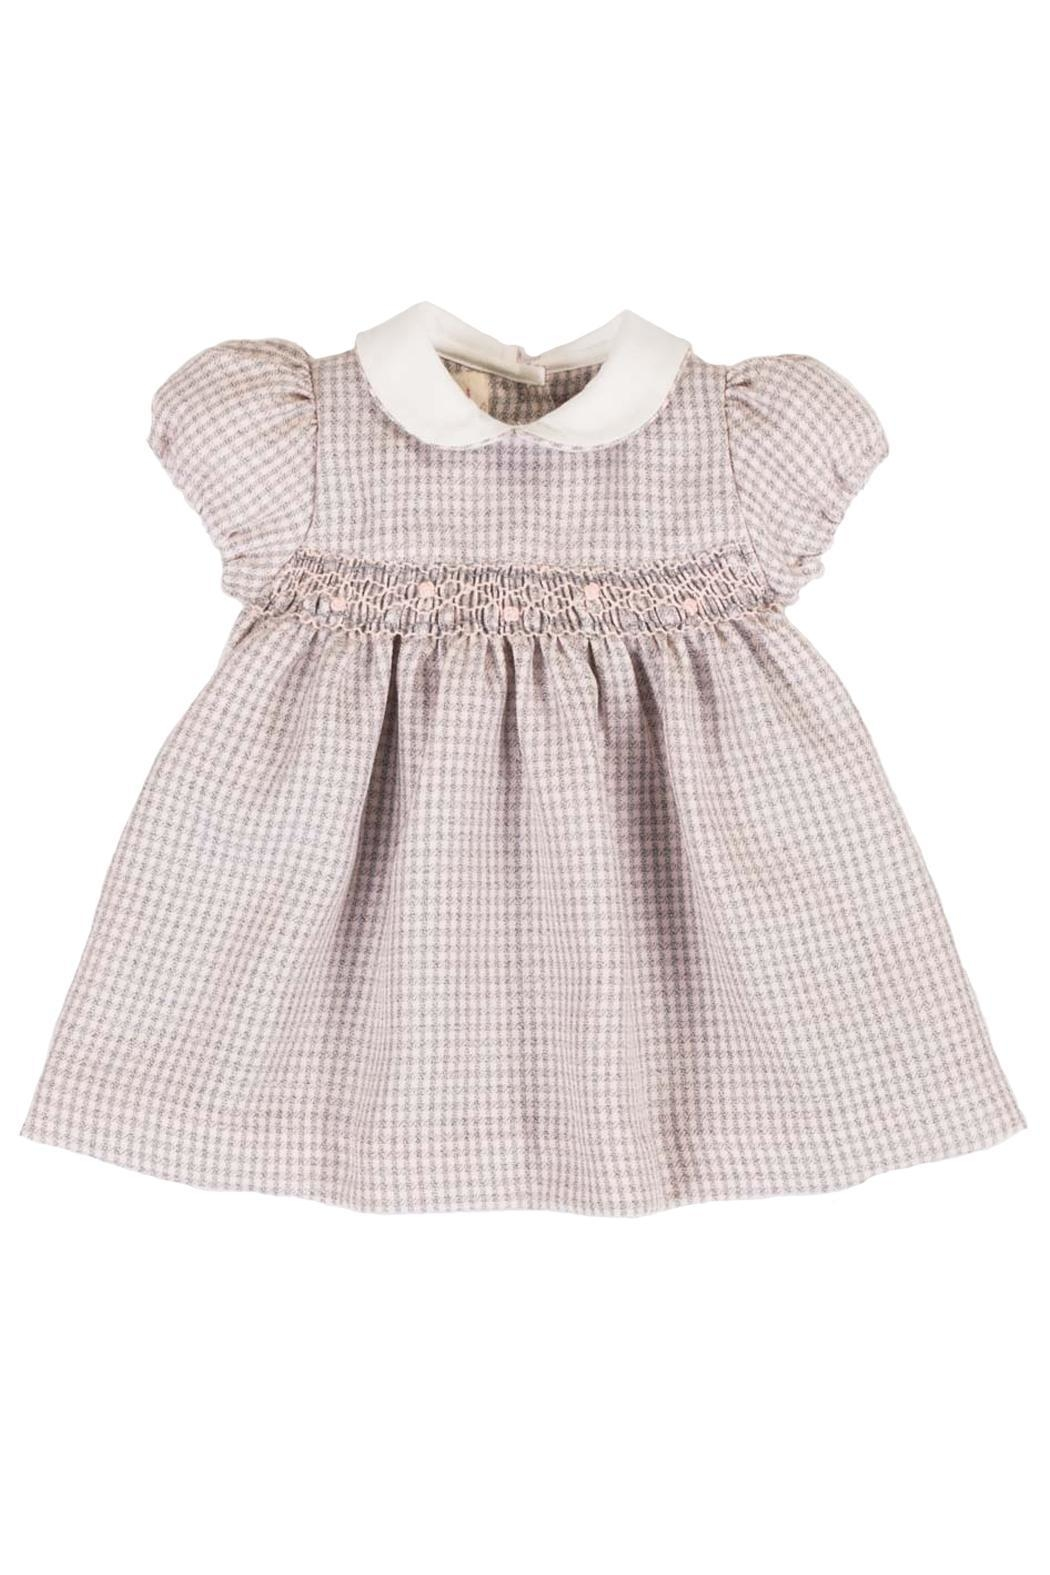 Malvi & Co. Pink Check Dress - Front Cropped Image